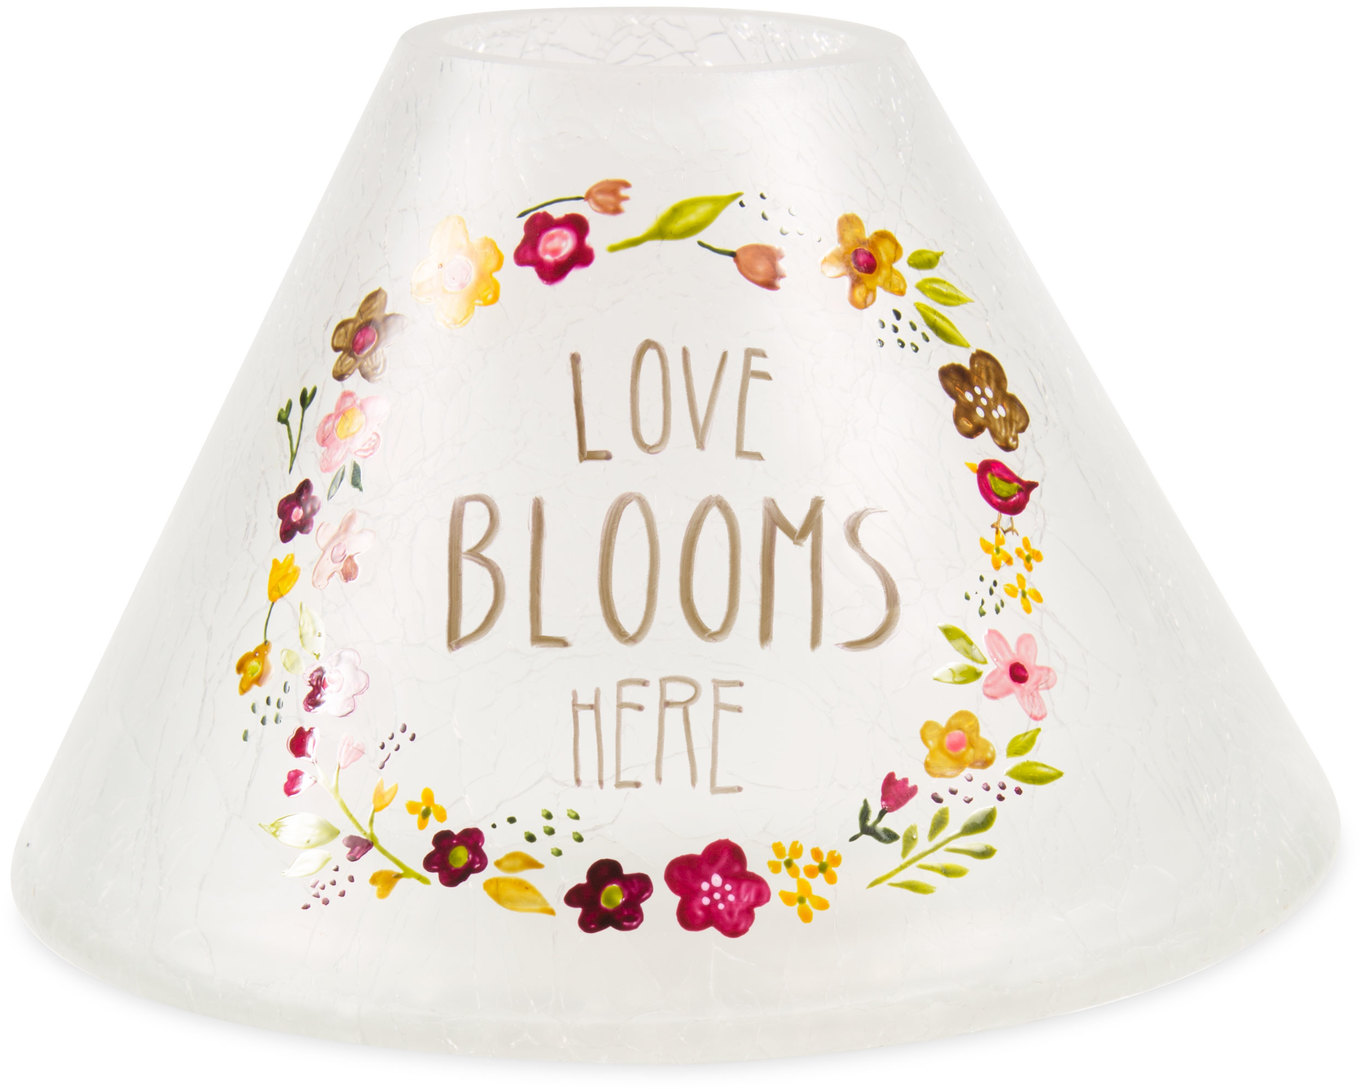 Love Blooms Here by Bless My Bloomers - Love Blooms Here - Large Candle Shade